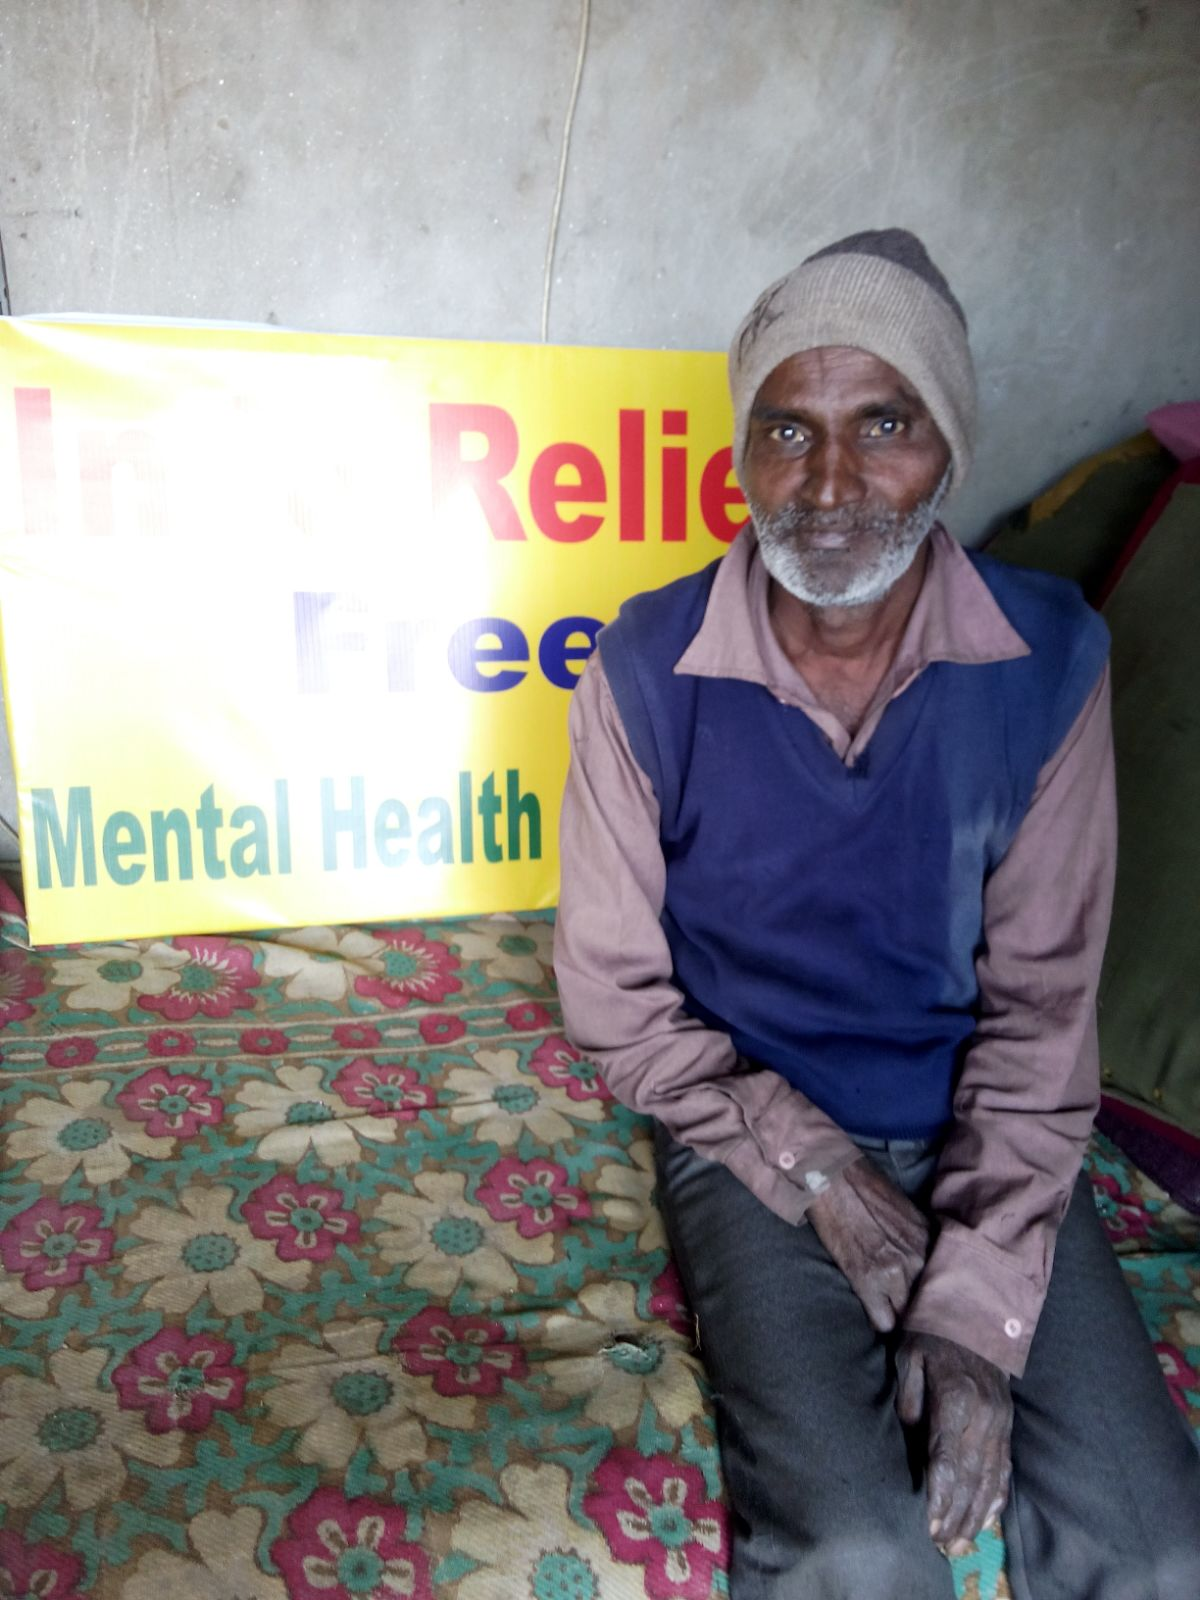 This is Ritvik. He is 62 years old. He wanted more learn more about mental health.